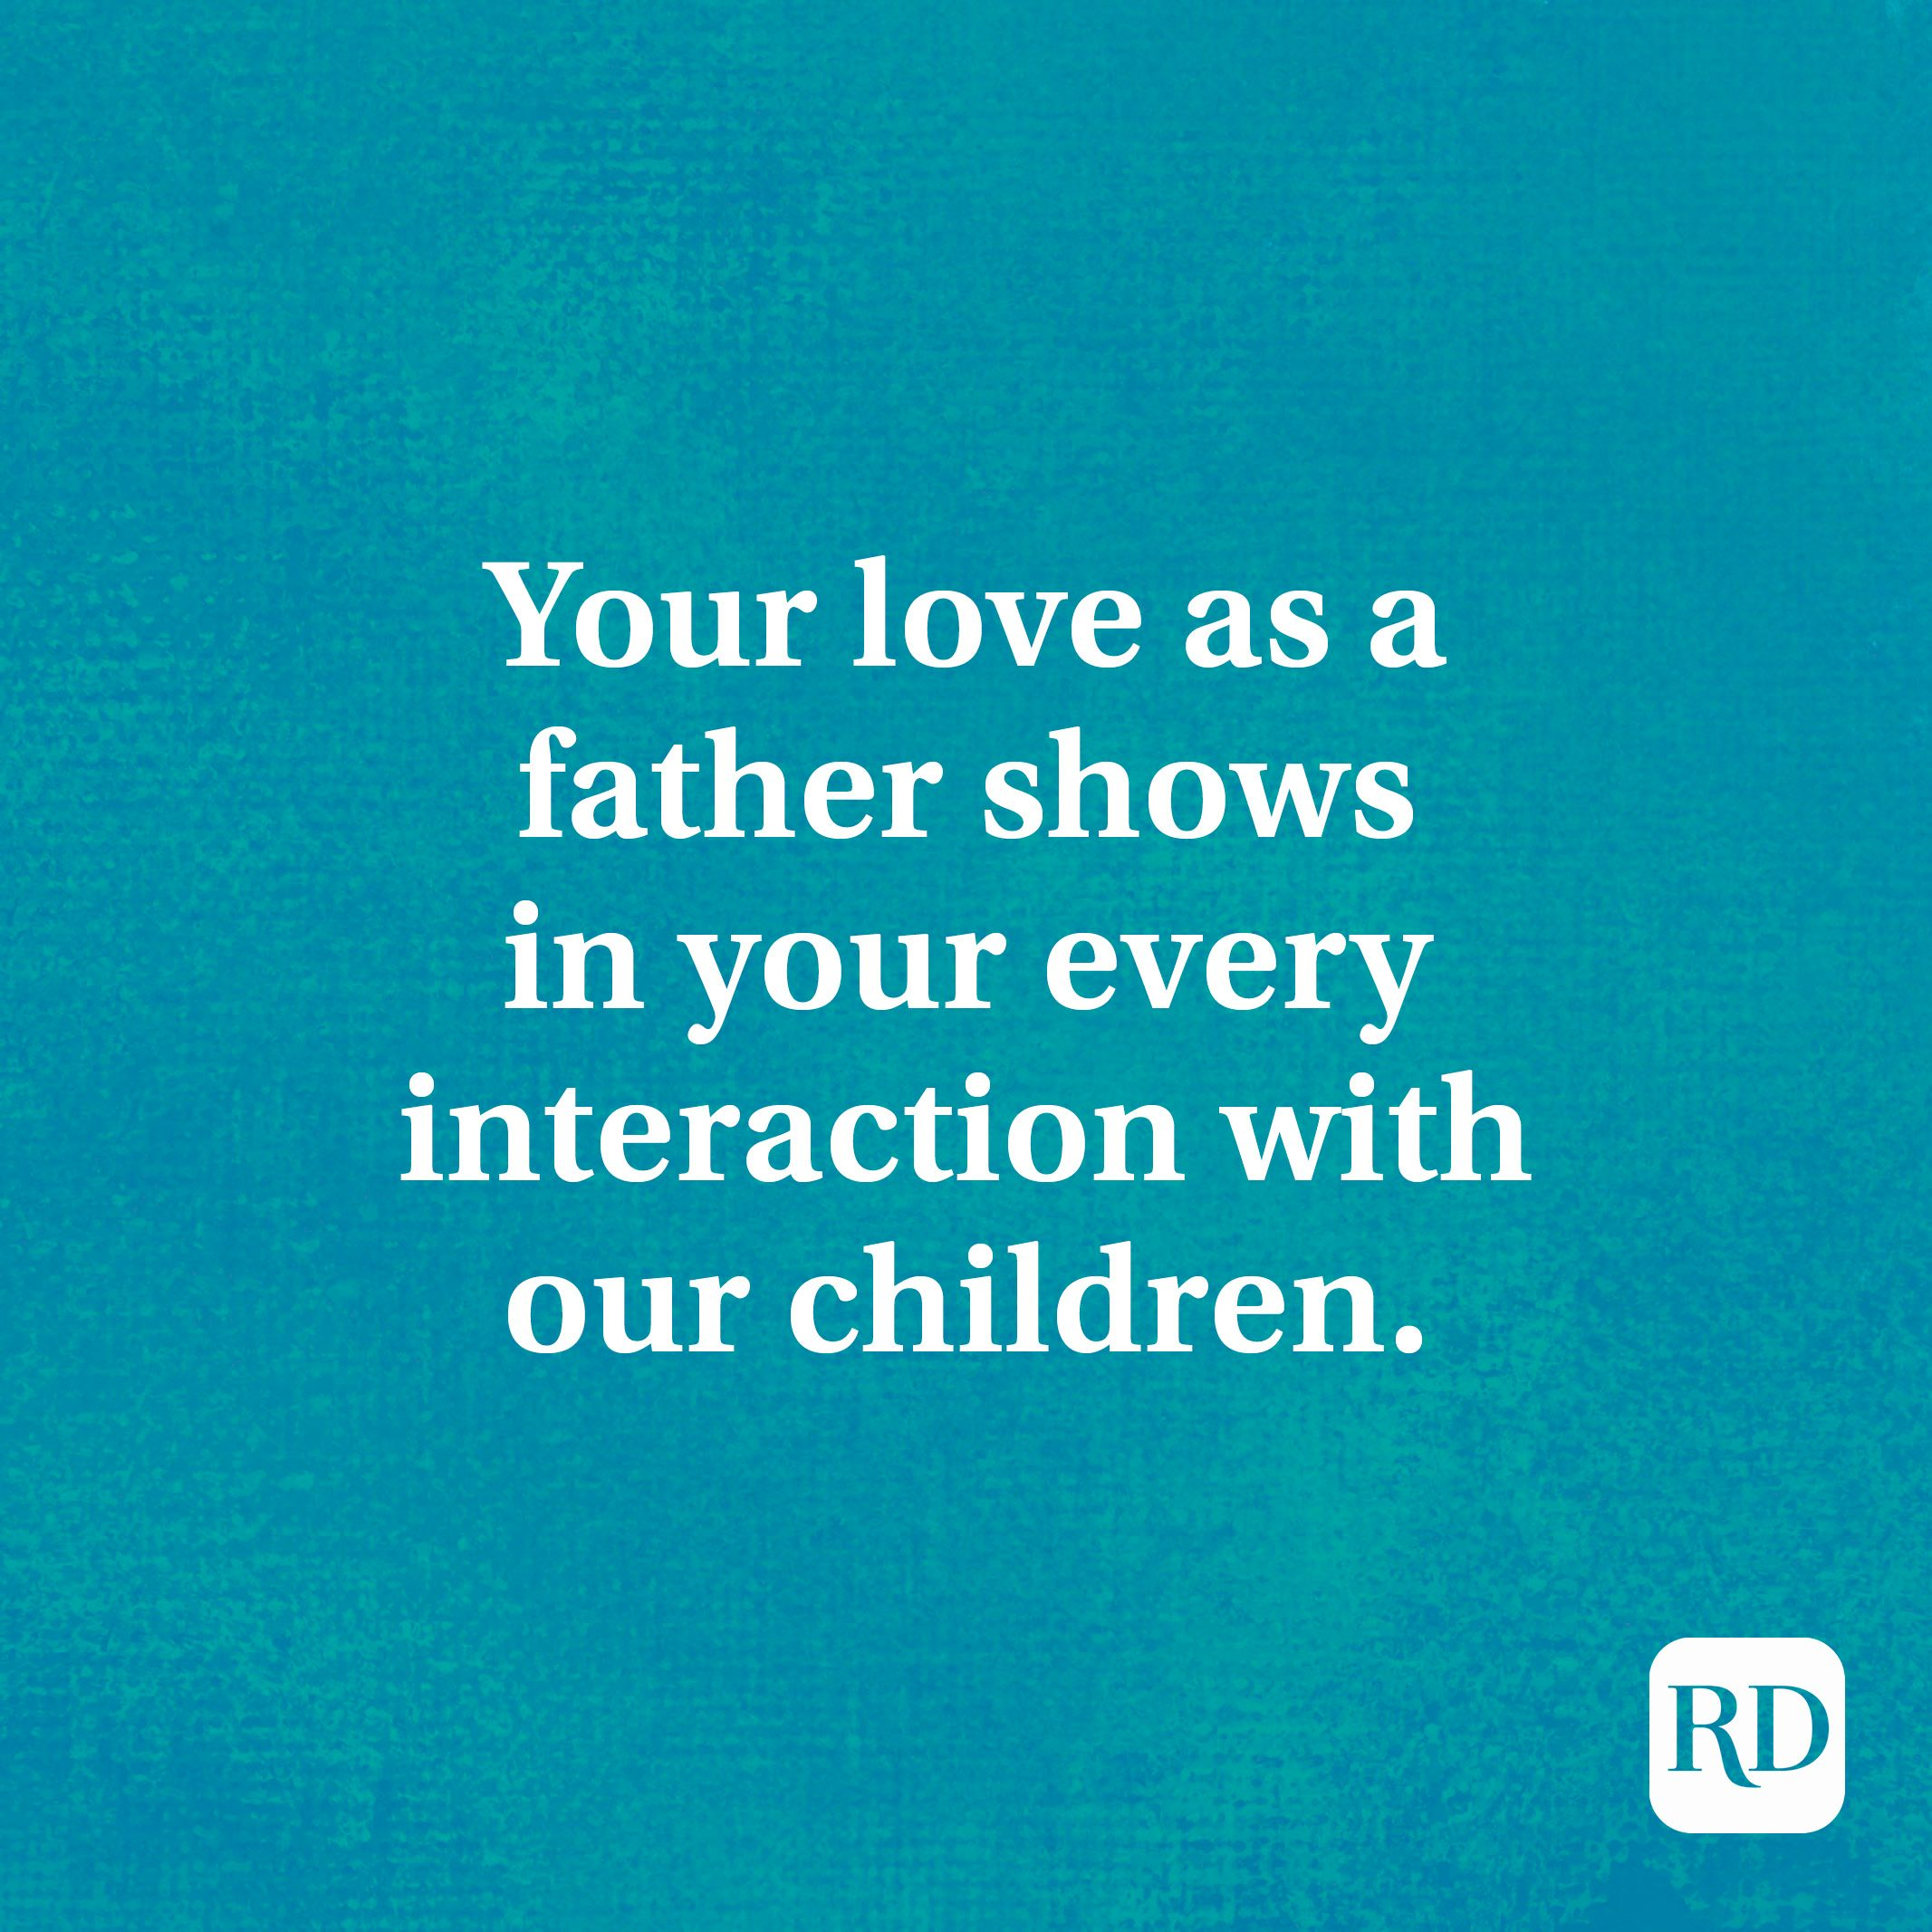 Your love as a father shows in your every interaction with our children.